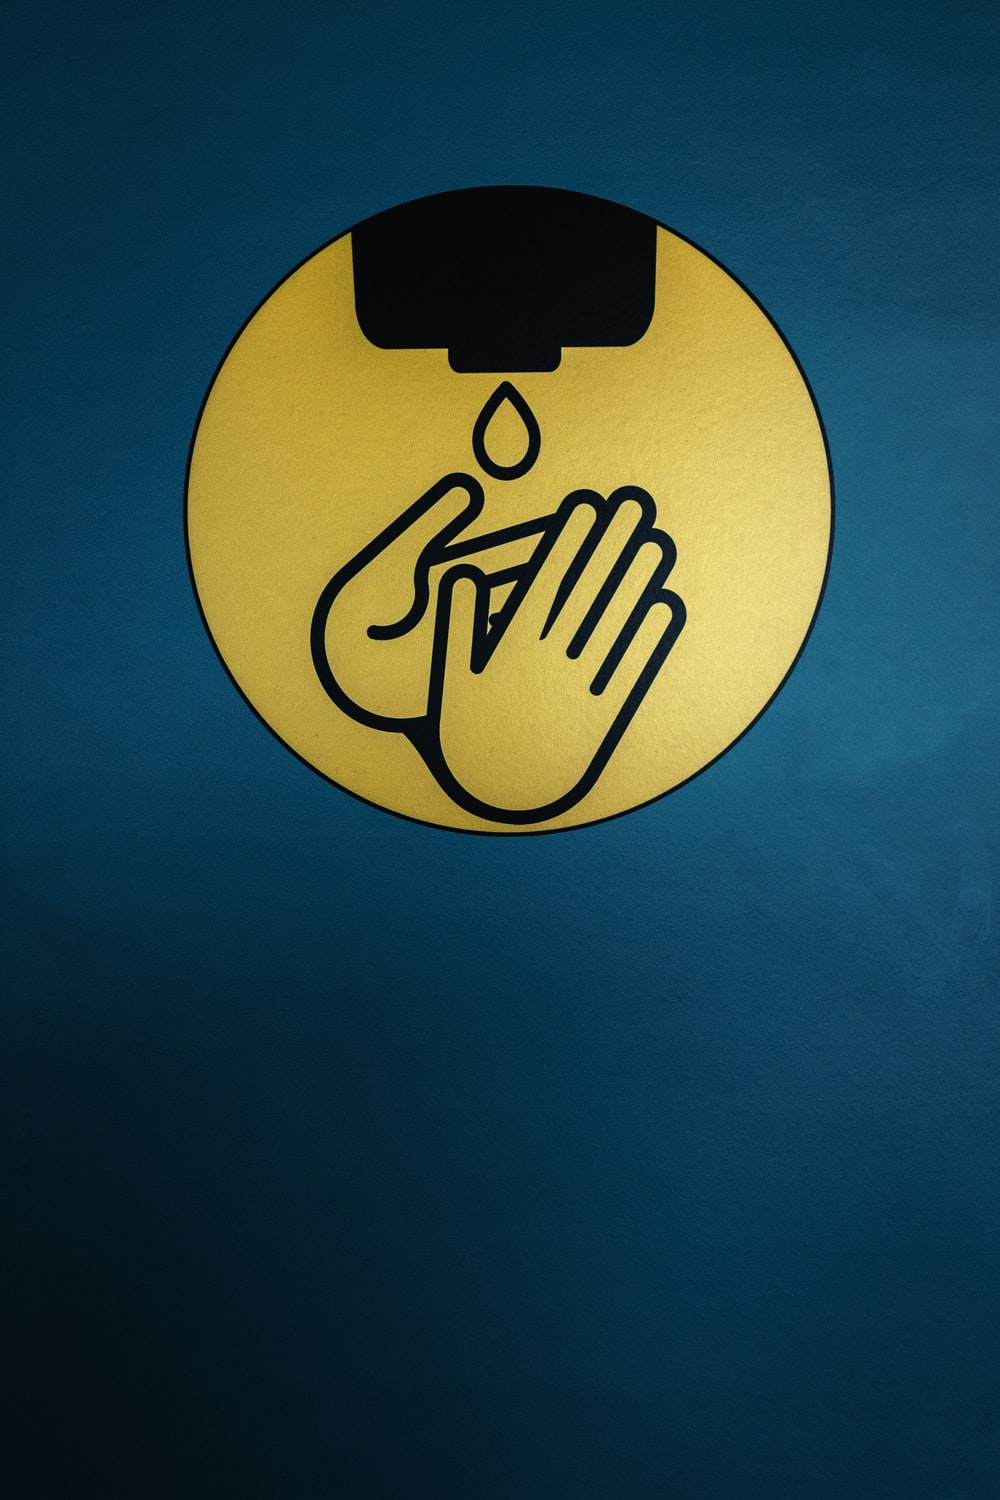 A picture with a handwashing symbol